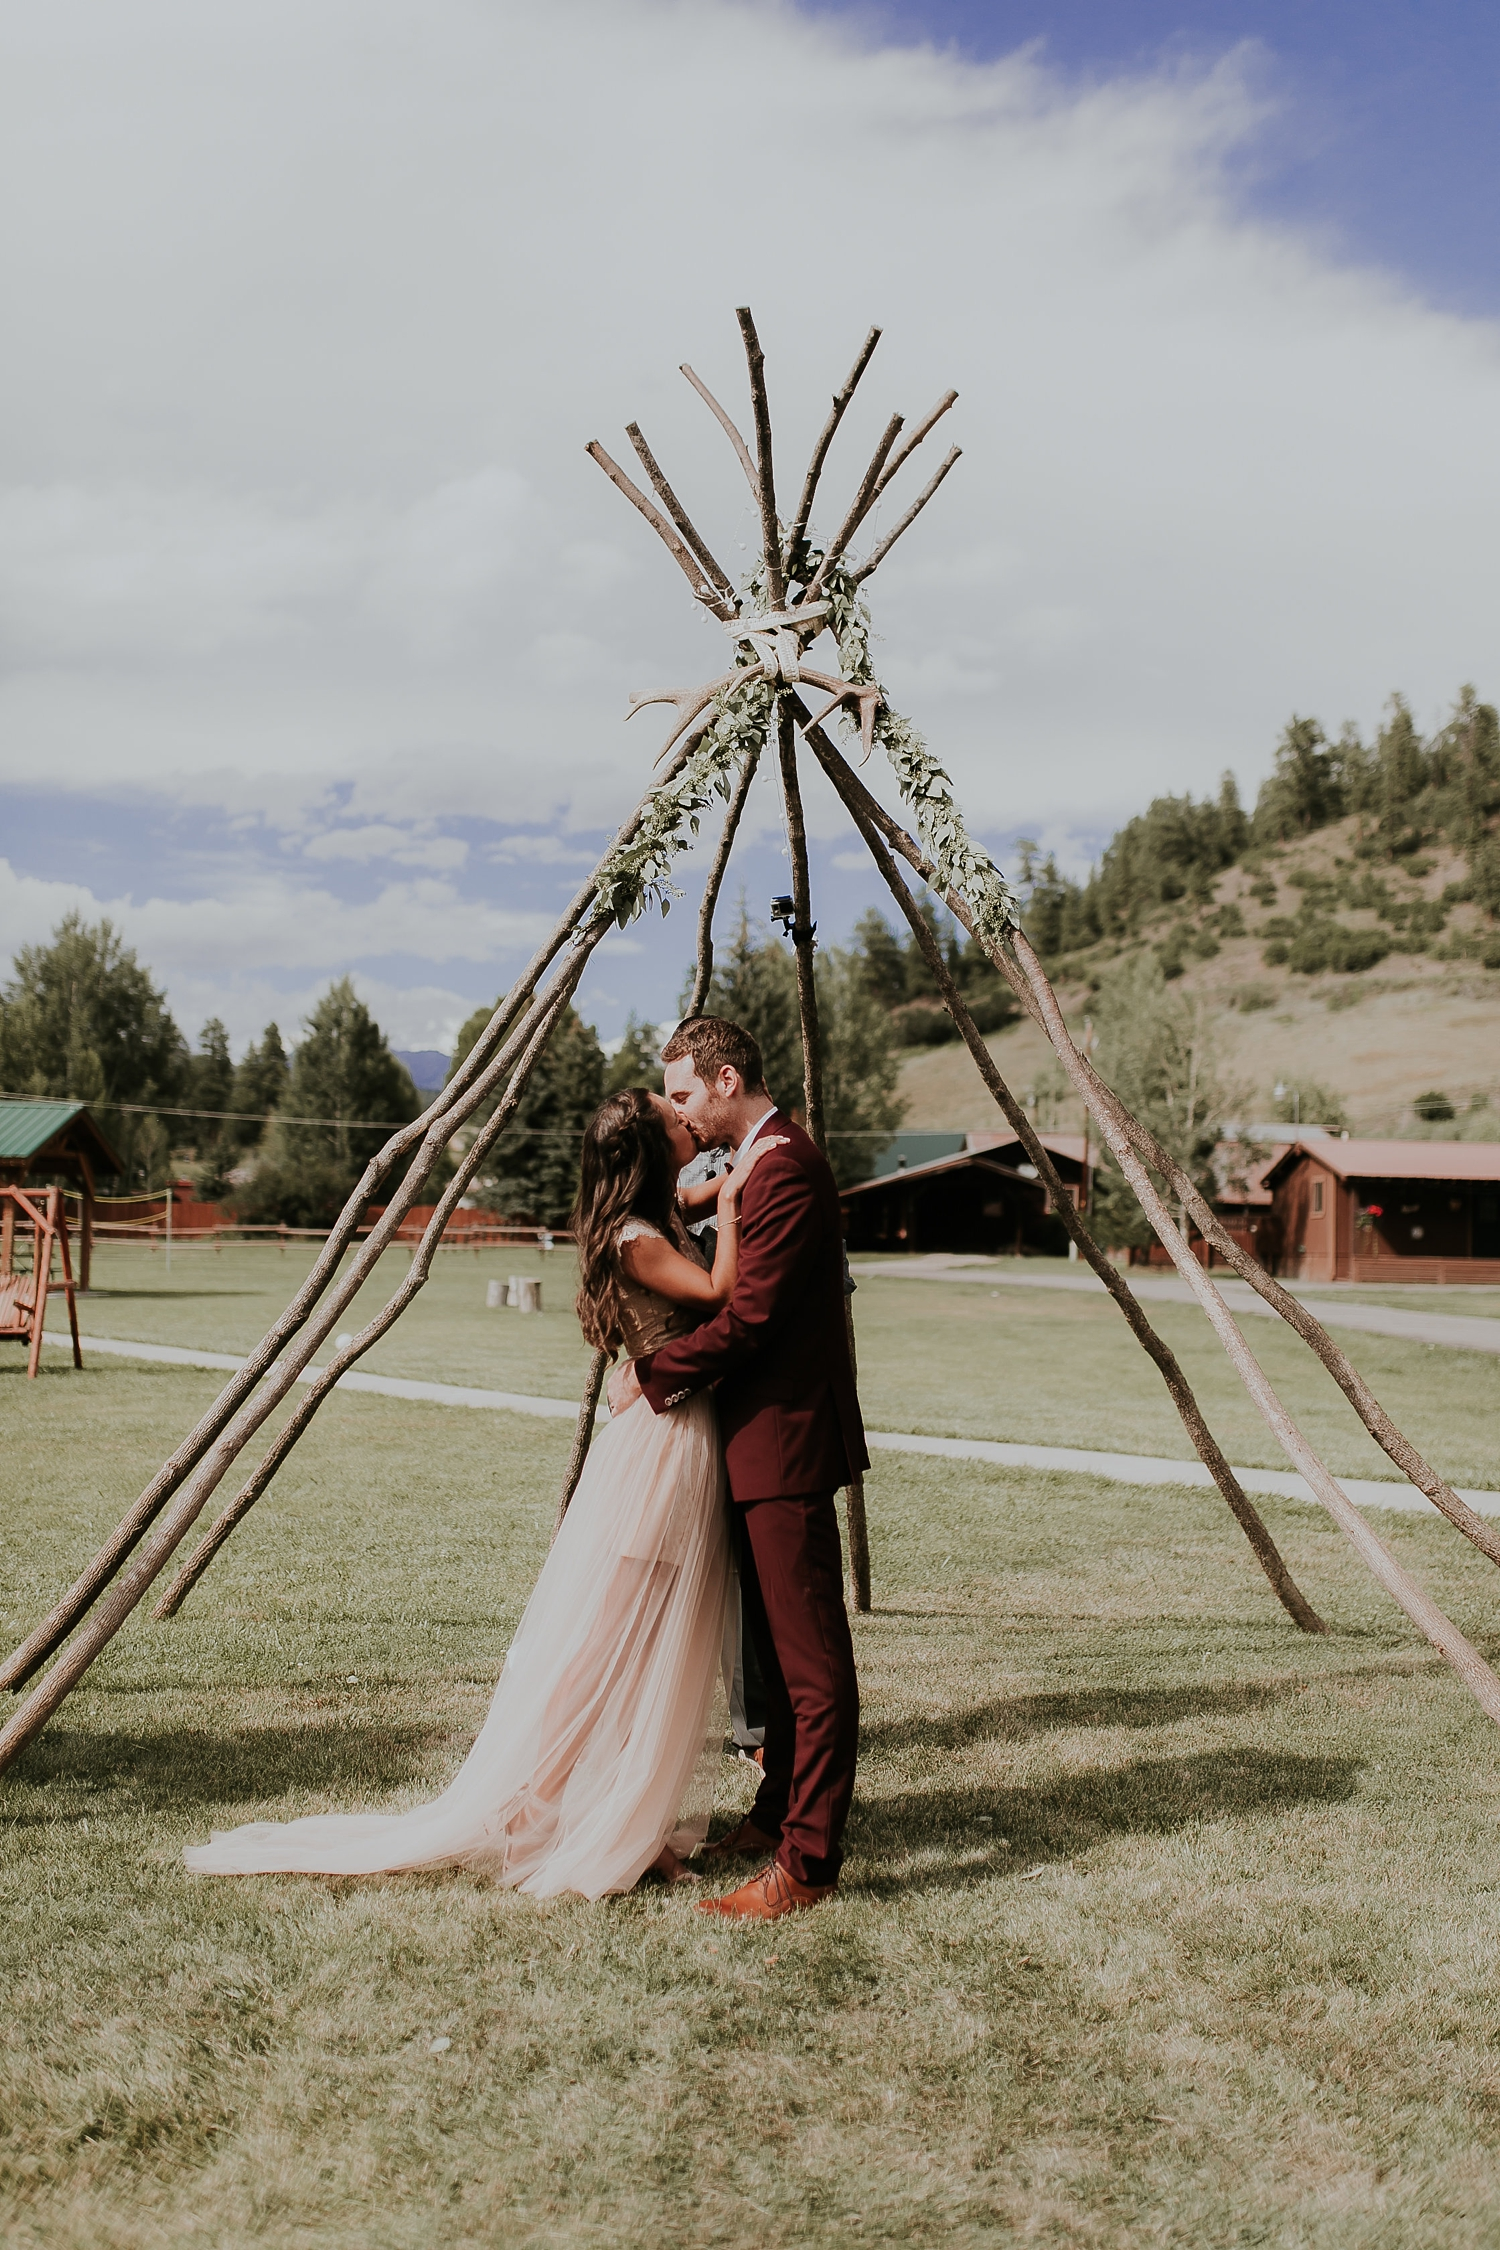 Alicia+lucia+photography+-+albuquerque+wedding+photographer+-+santa+fe+wedding+photography+-+new+mexico+wedding+photographer+-+pagosa+springs+wedding+-+destination+wedding_0029.jpg